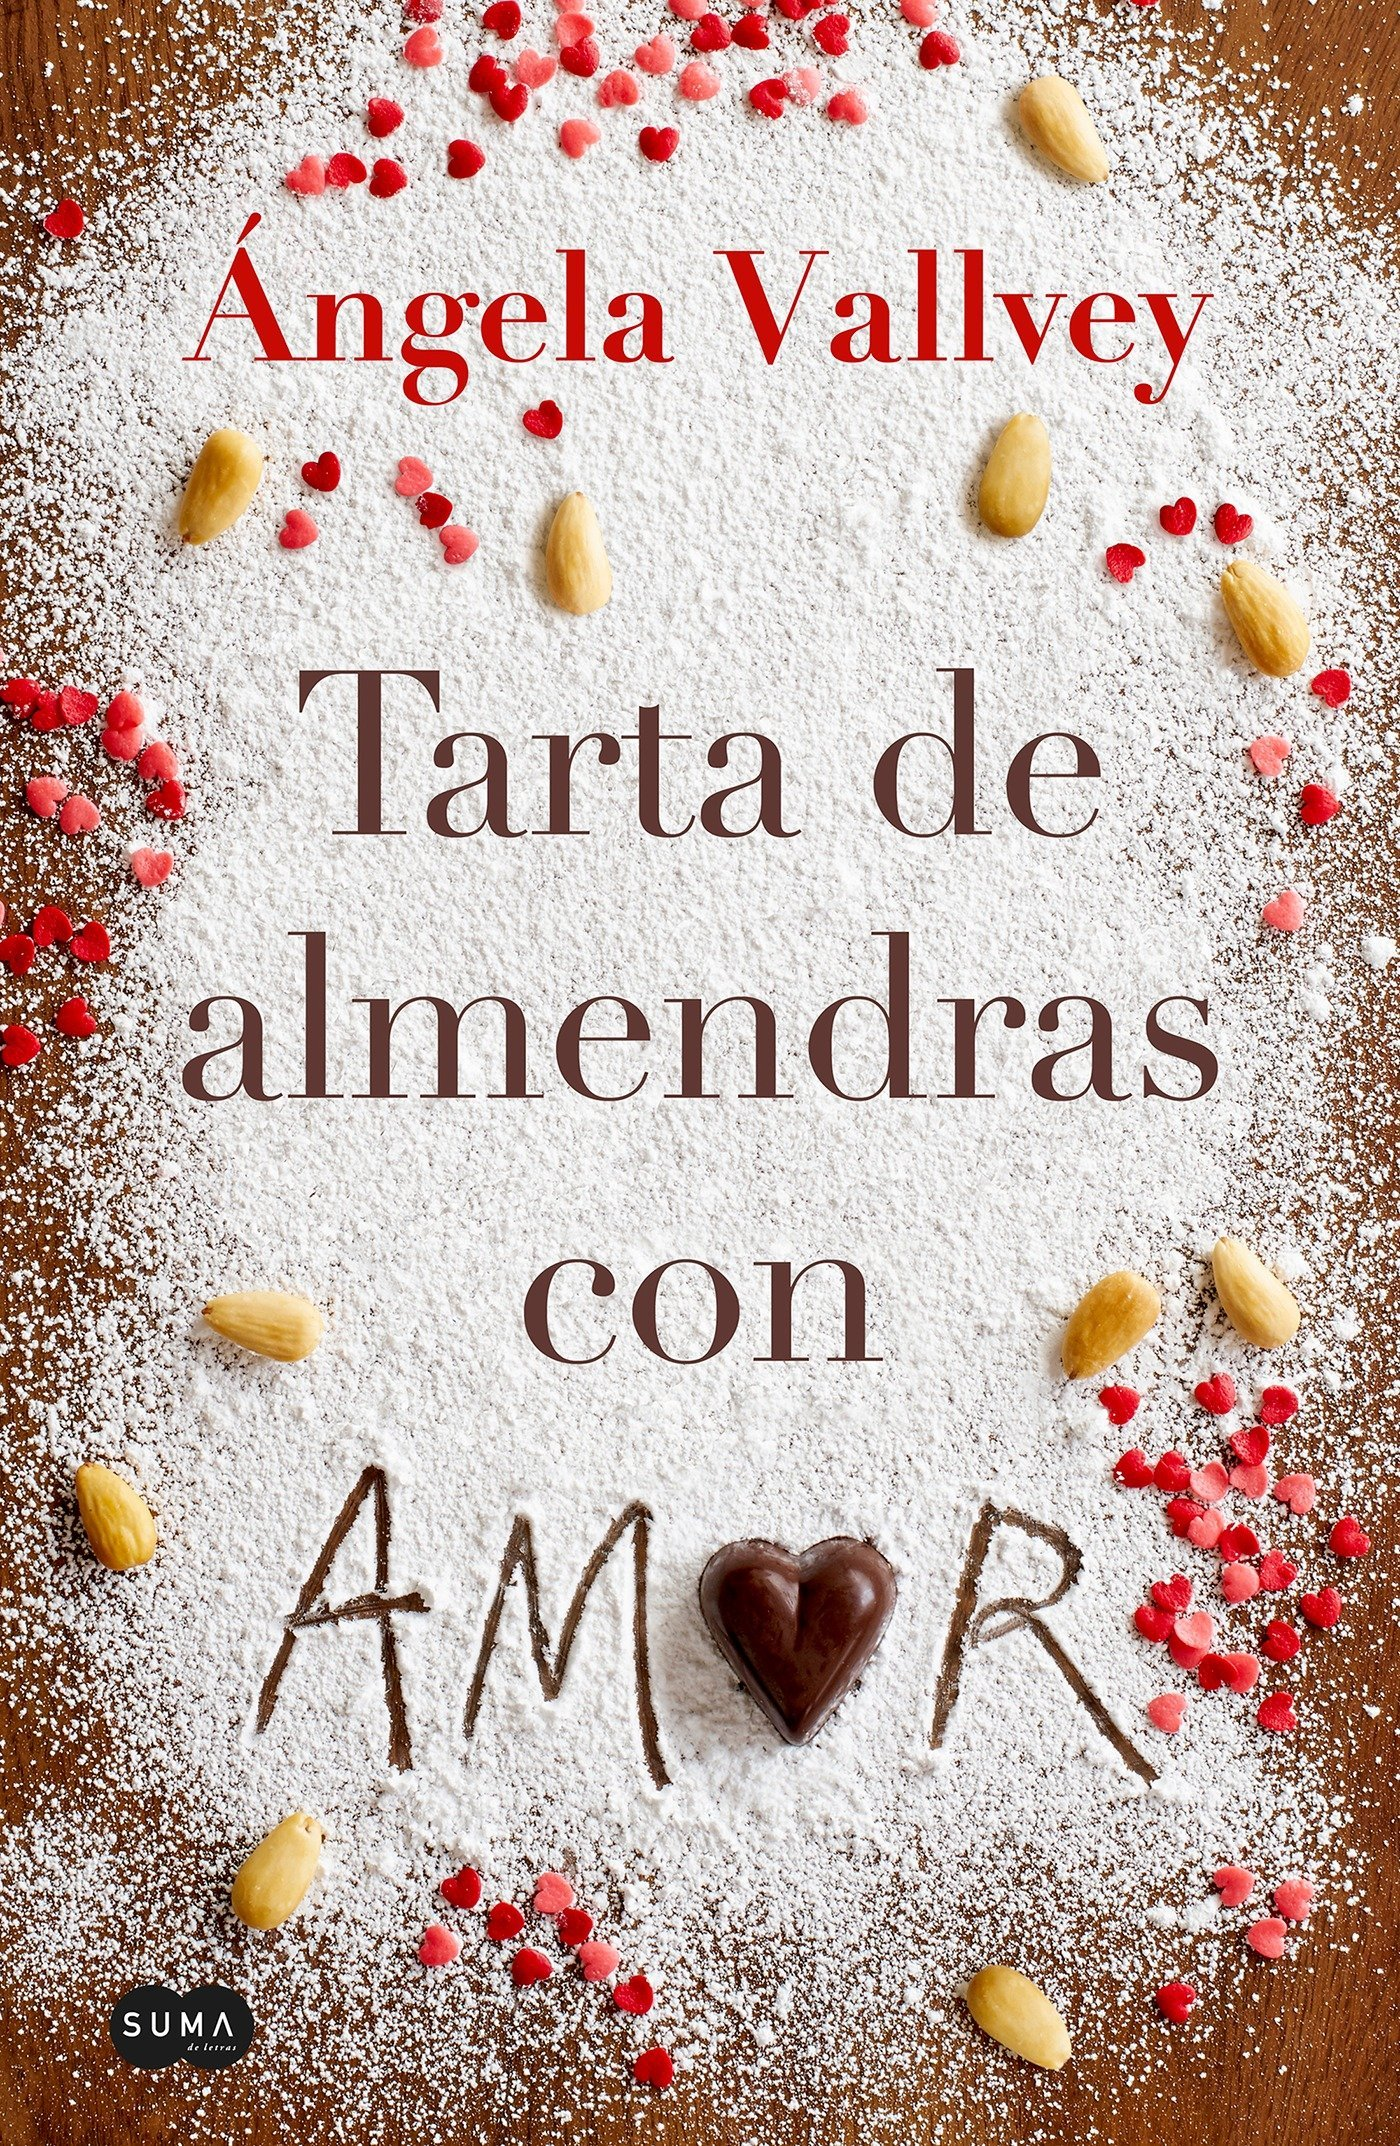 Tarta de Almendras con amor / Almond Cake With Love (Spanish Edition): Angela Vallvey: 9788491290971: Amazon.com: Books